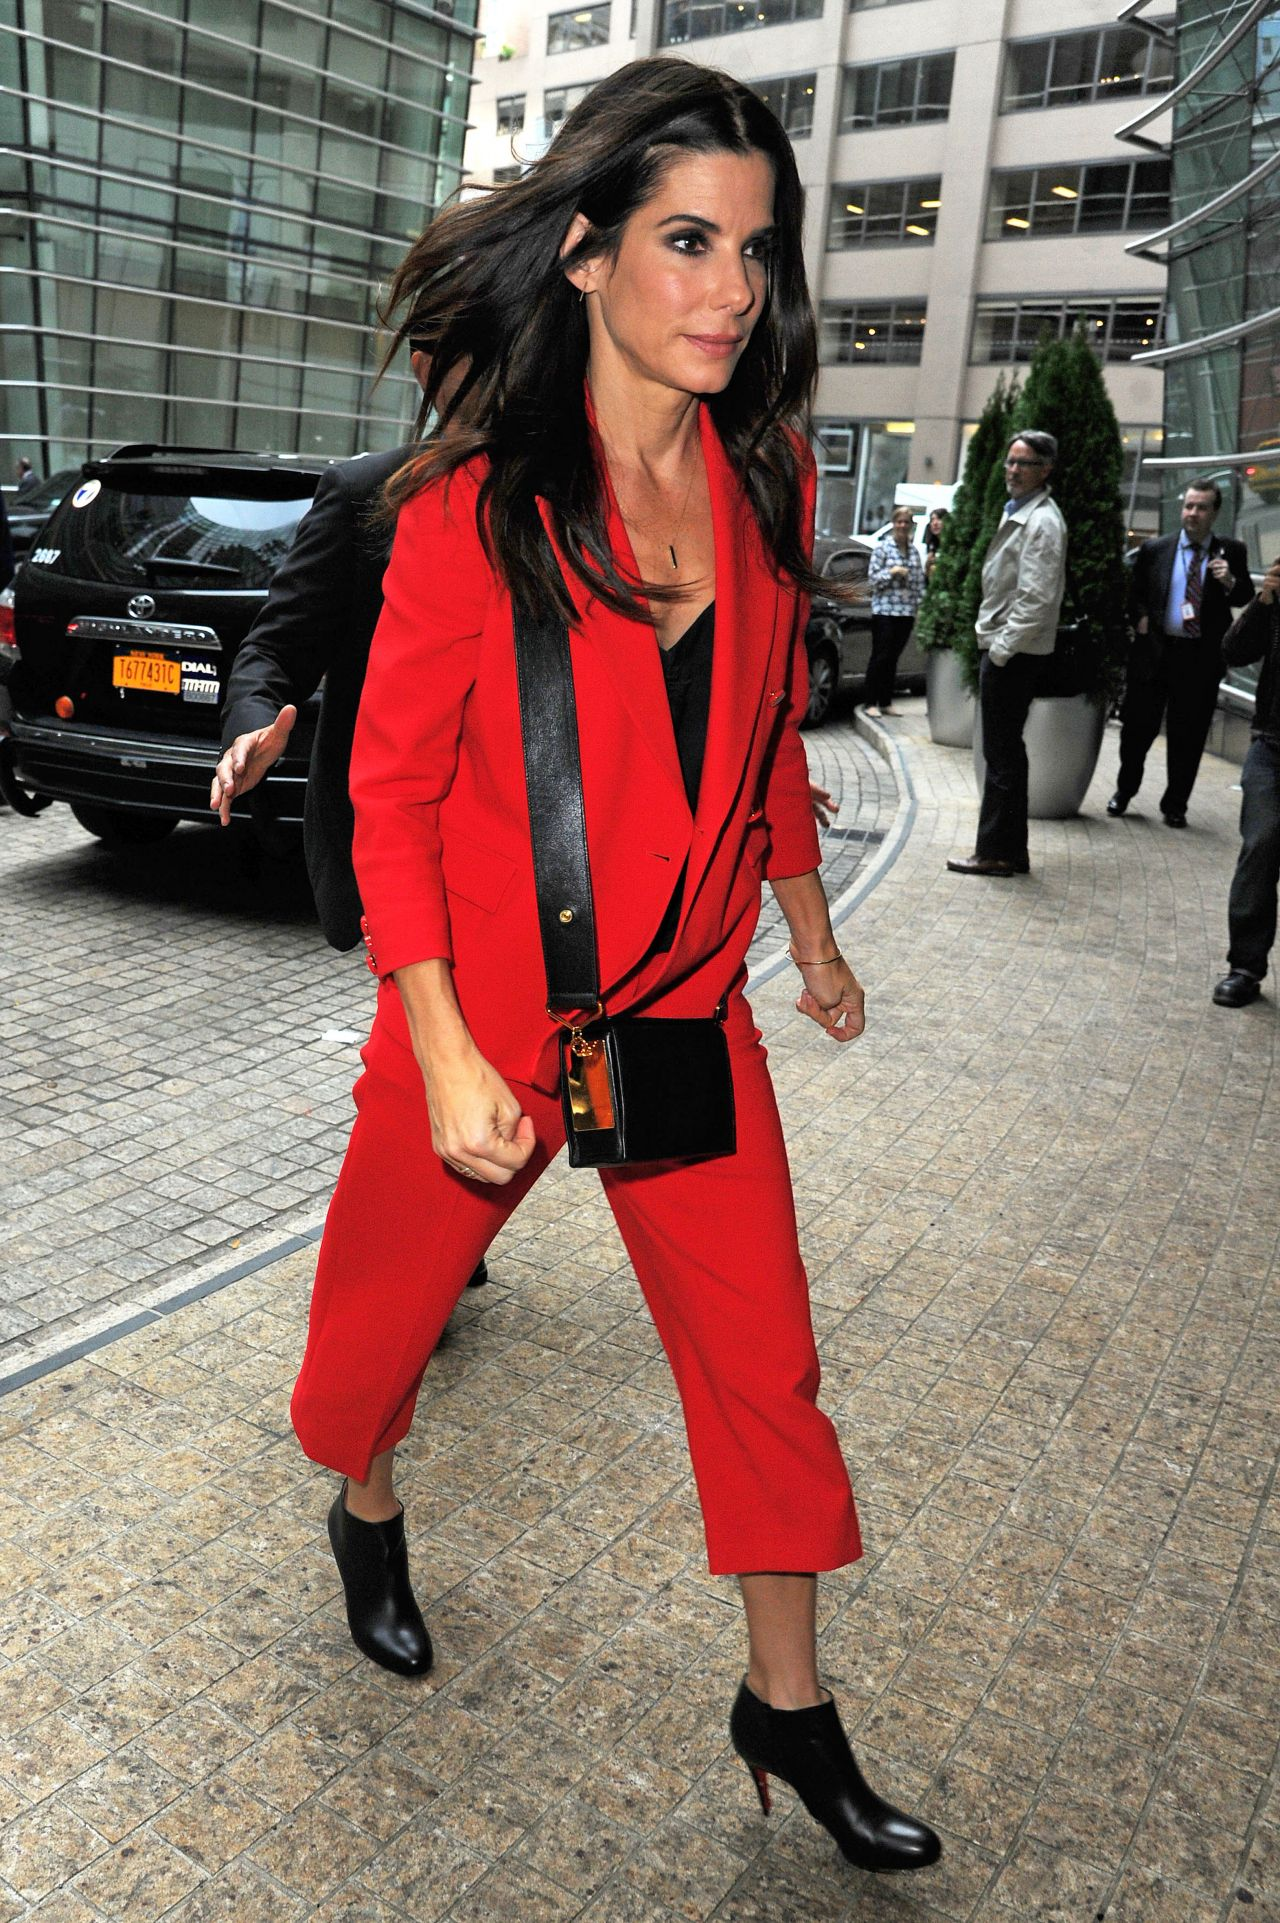 Sandra bullock at the office building in midtown october 2015 fashionsizzle Fashion style october 2015